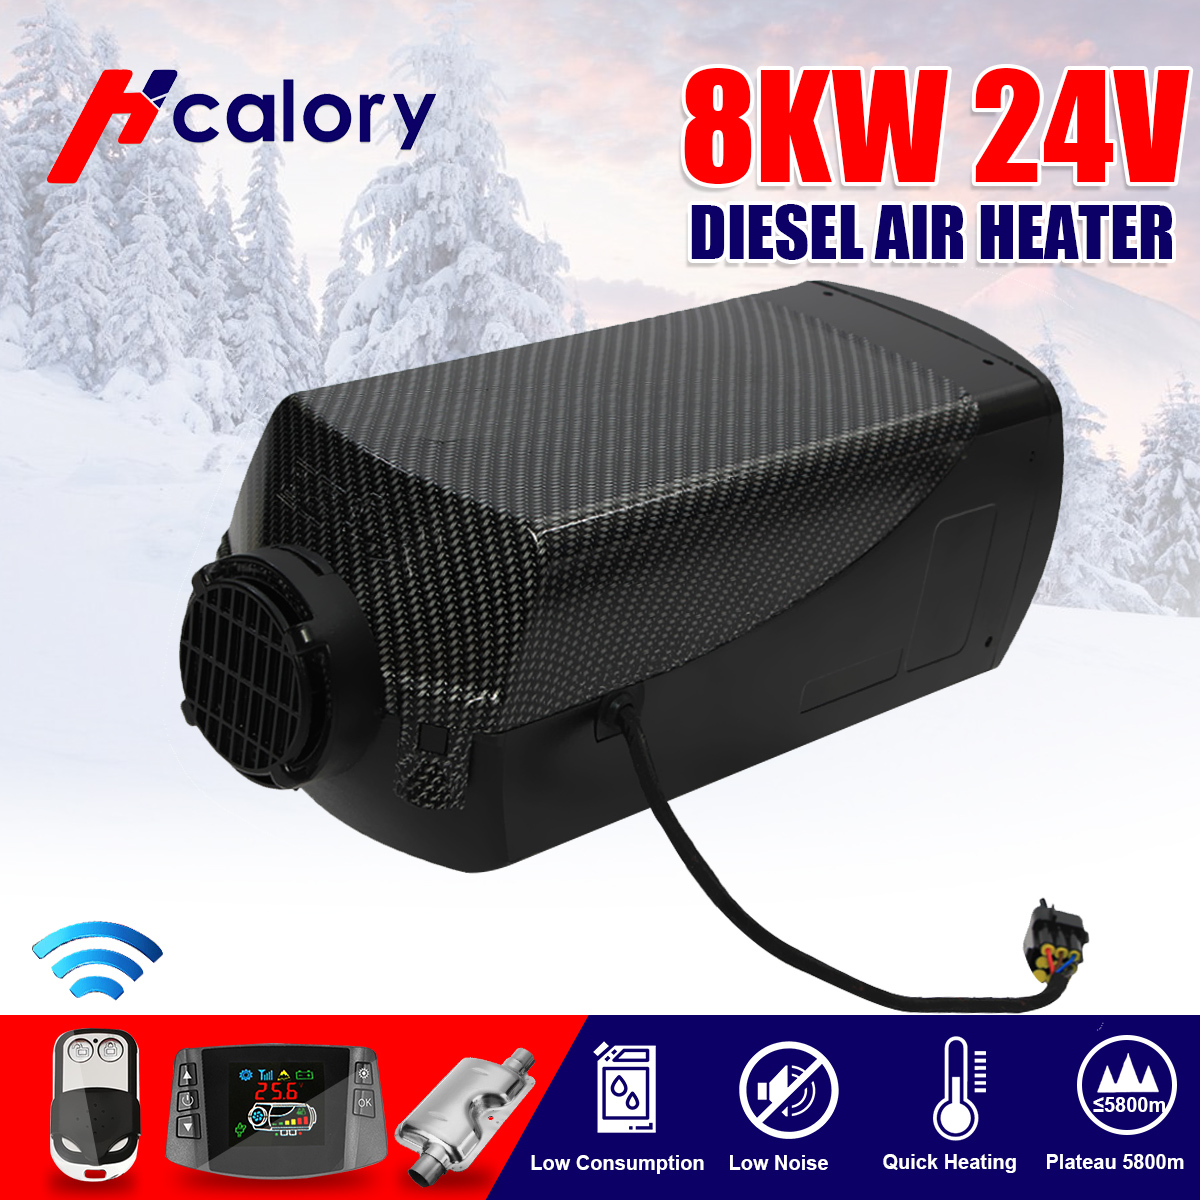 Hcalory 12 V/24 V 8000W LCD Switch Degreaser Wire Harness Split Machine Parkir Pemanas Mobil Perahu RV motor Truk Trailer